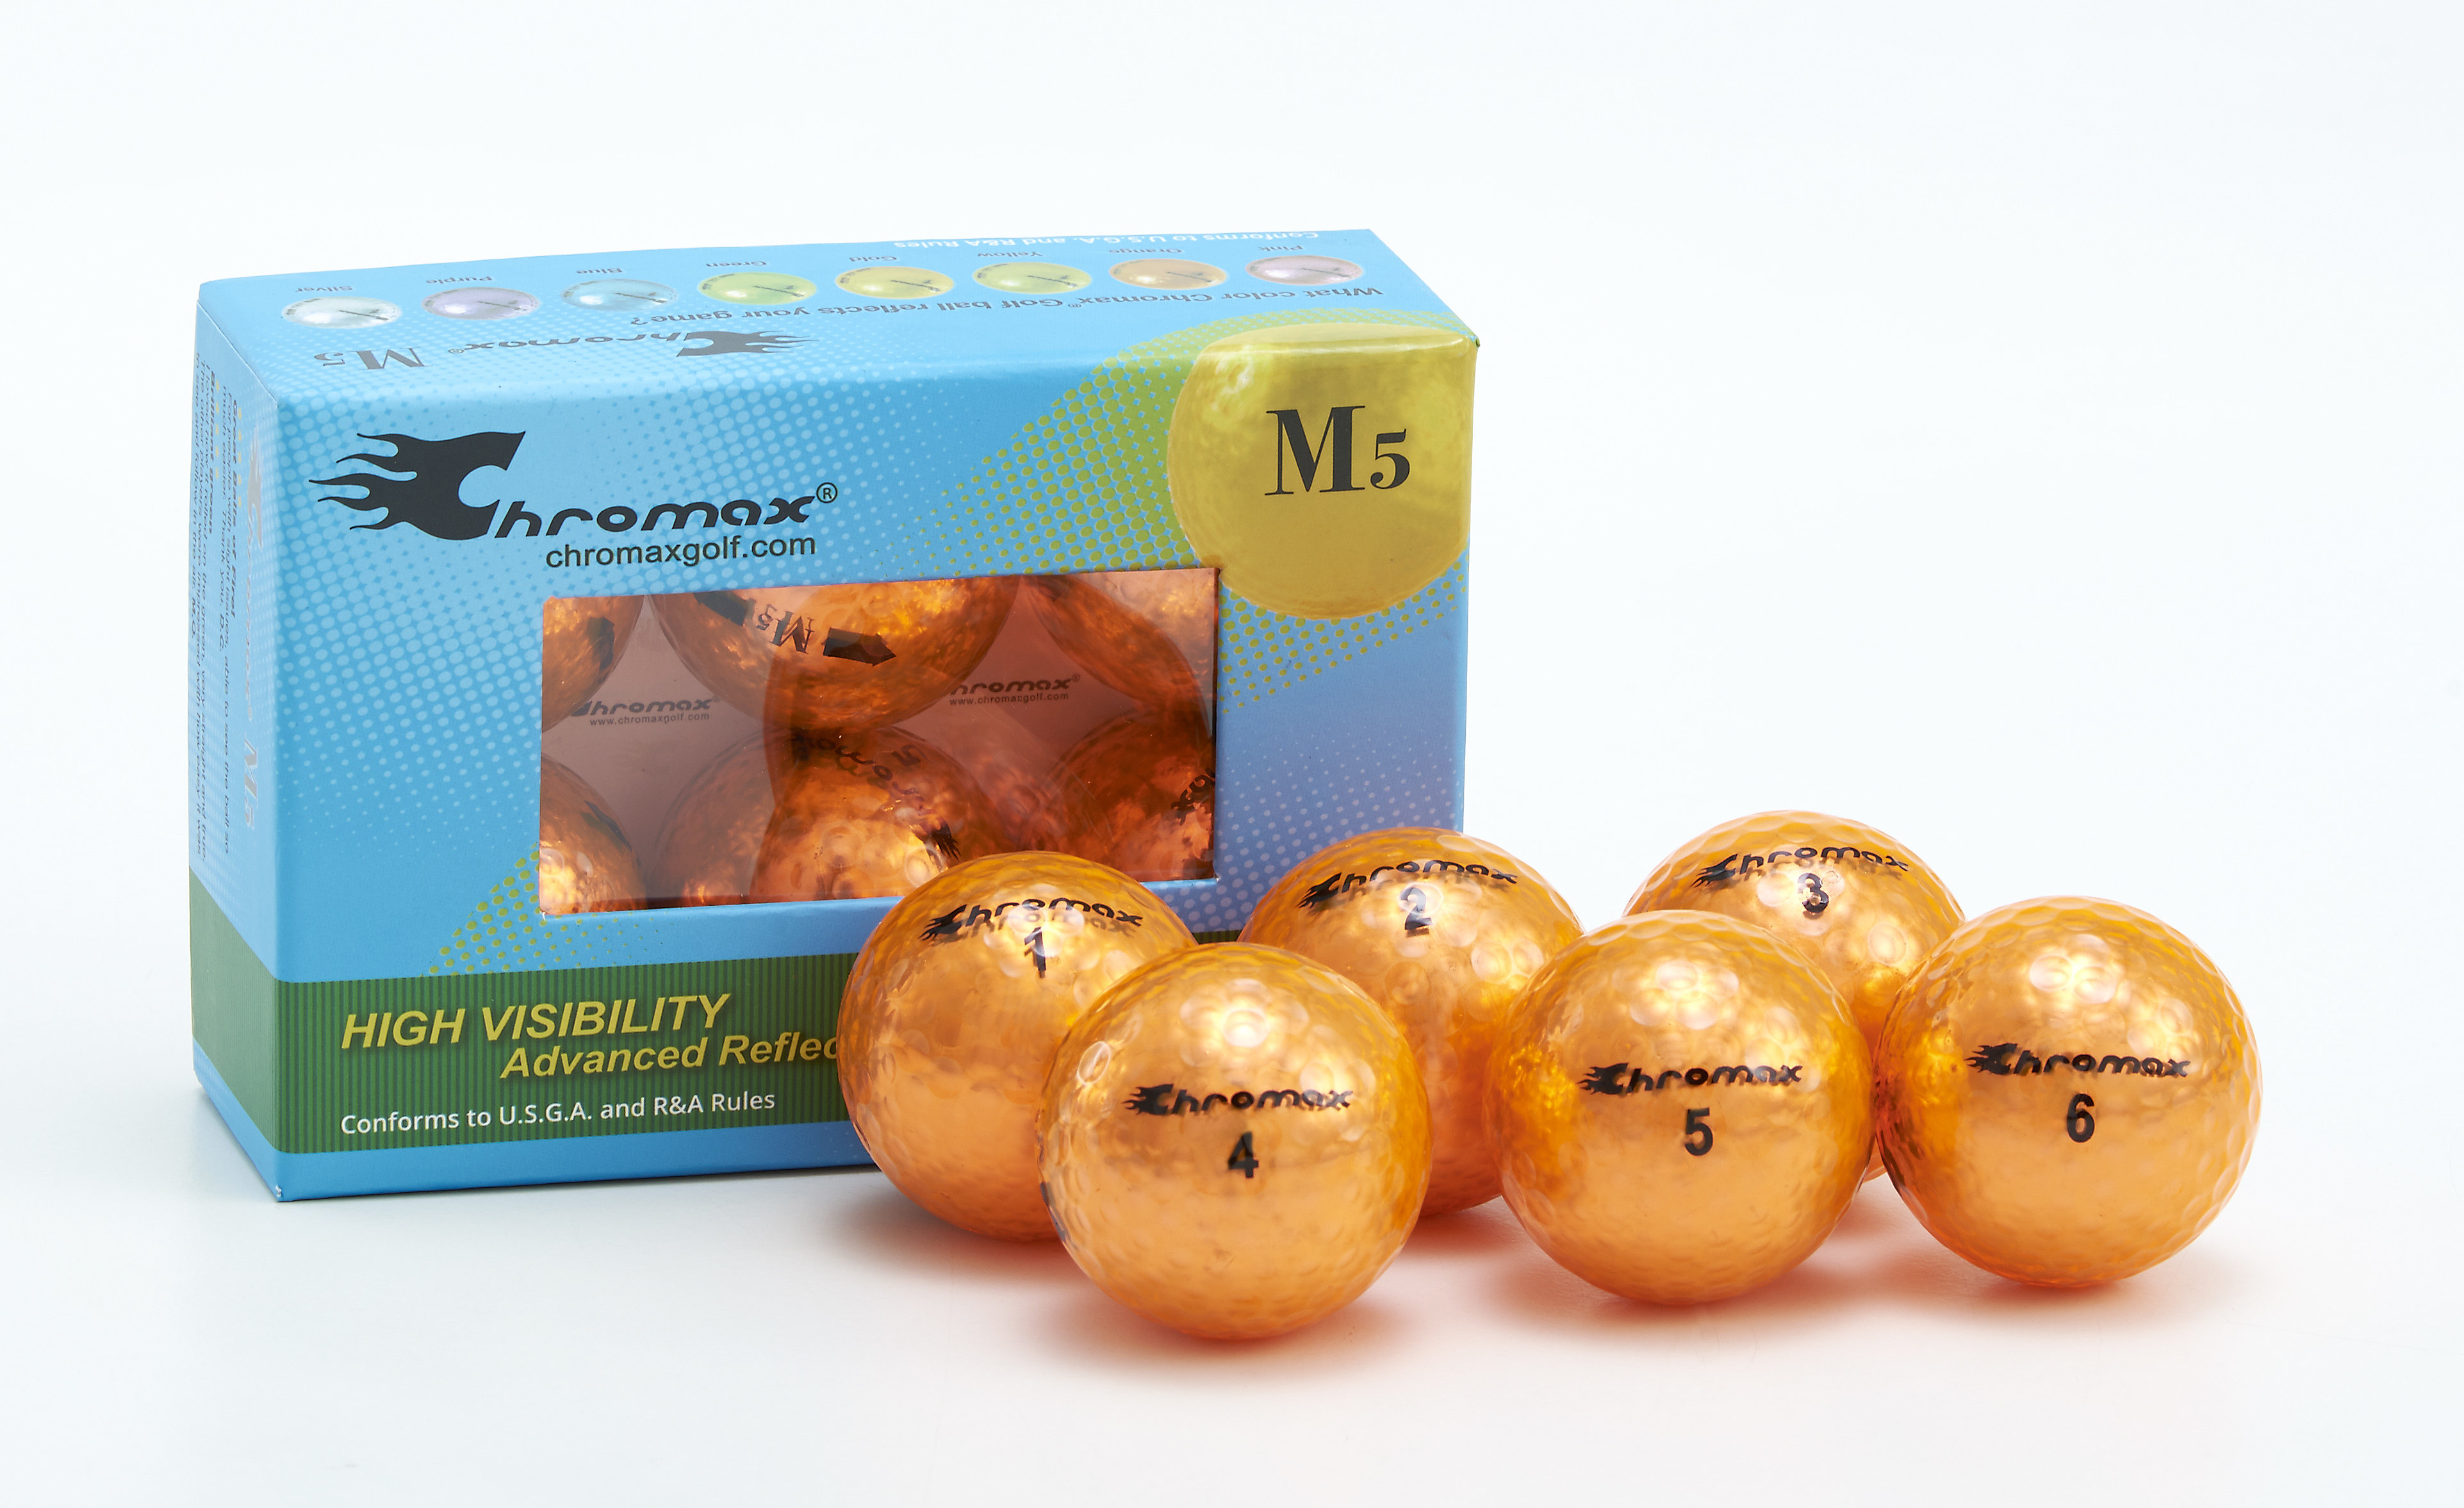 Chromax® Colored Orange Golf Balls - Metallic M5 6 Ball Pack CM56ORG